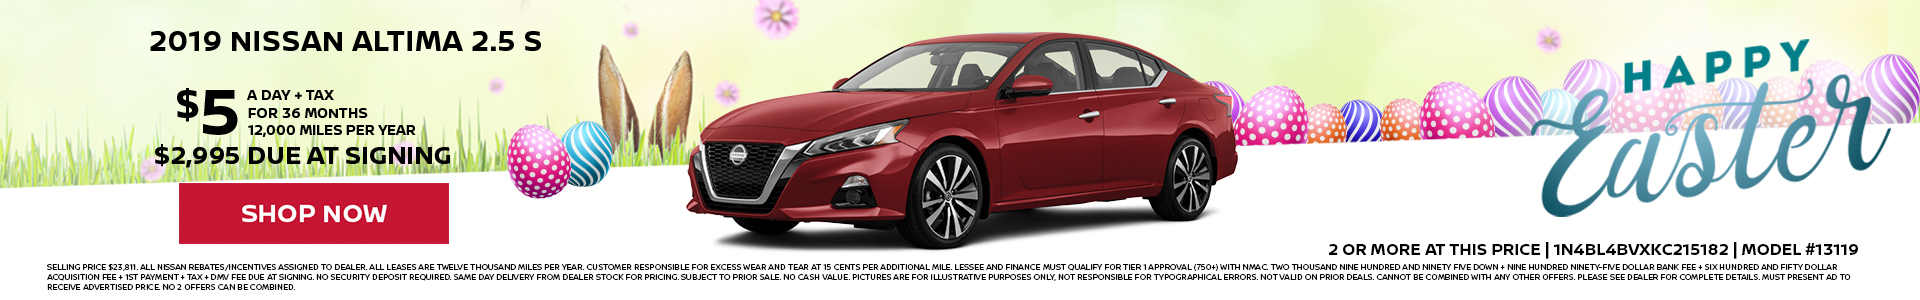 Nissan Altima $5 Day Lease